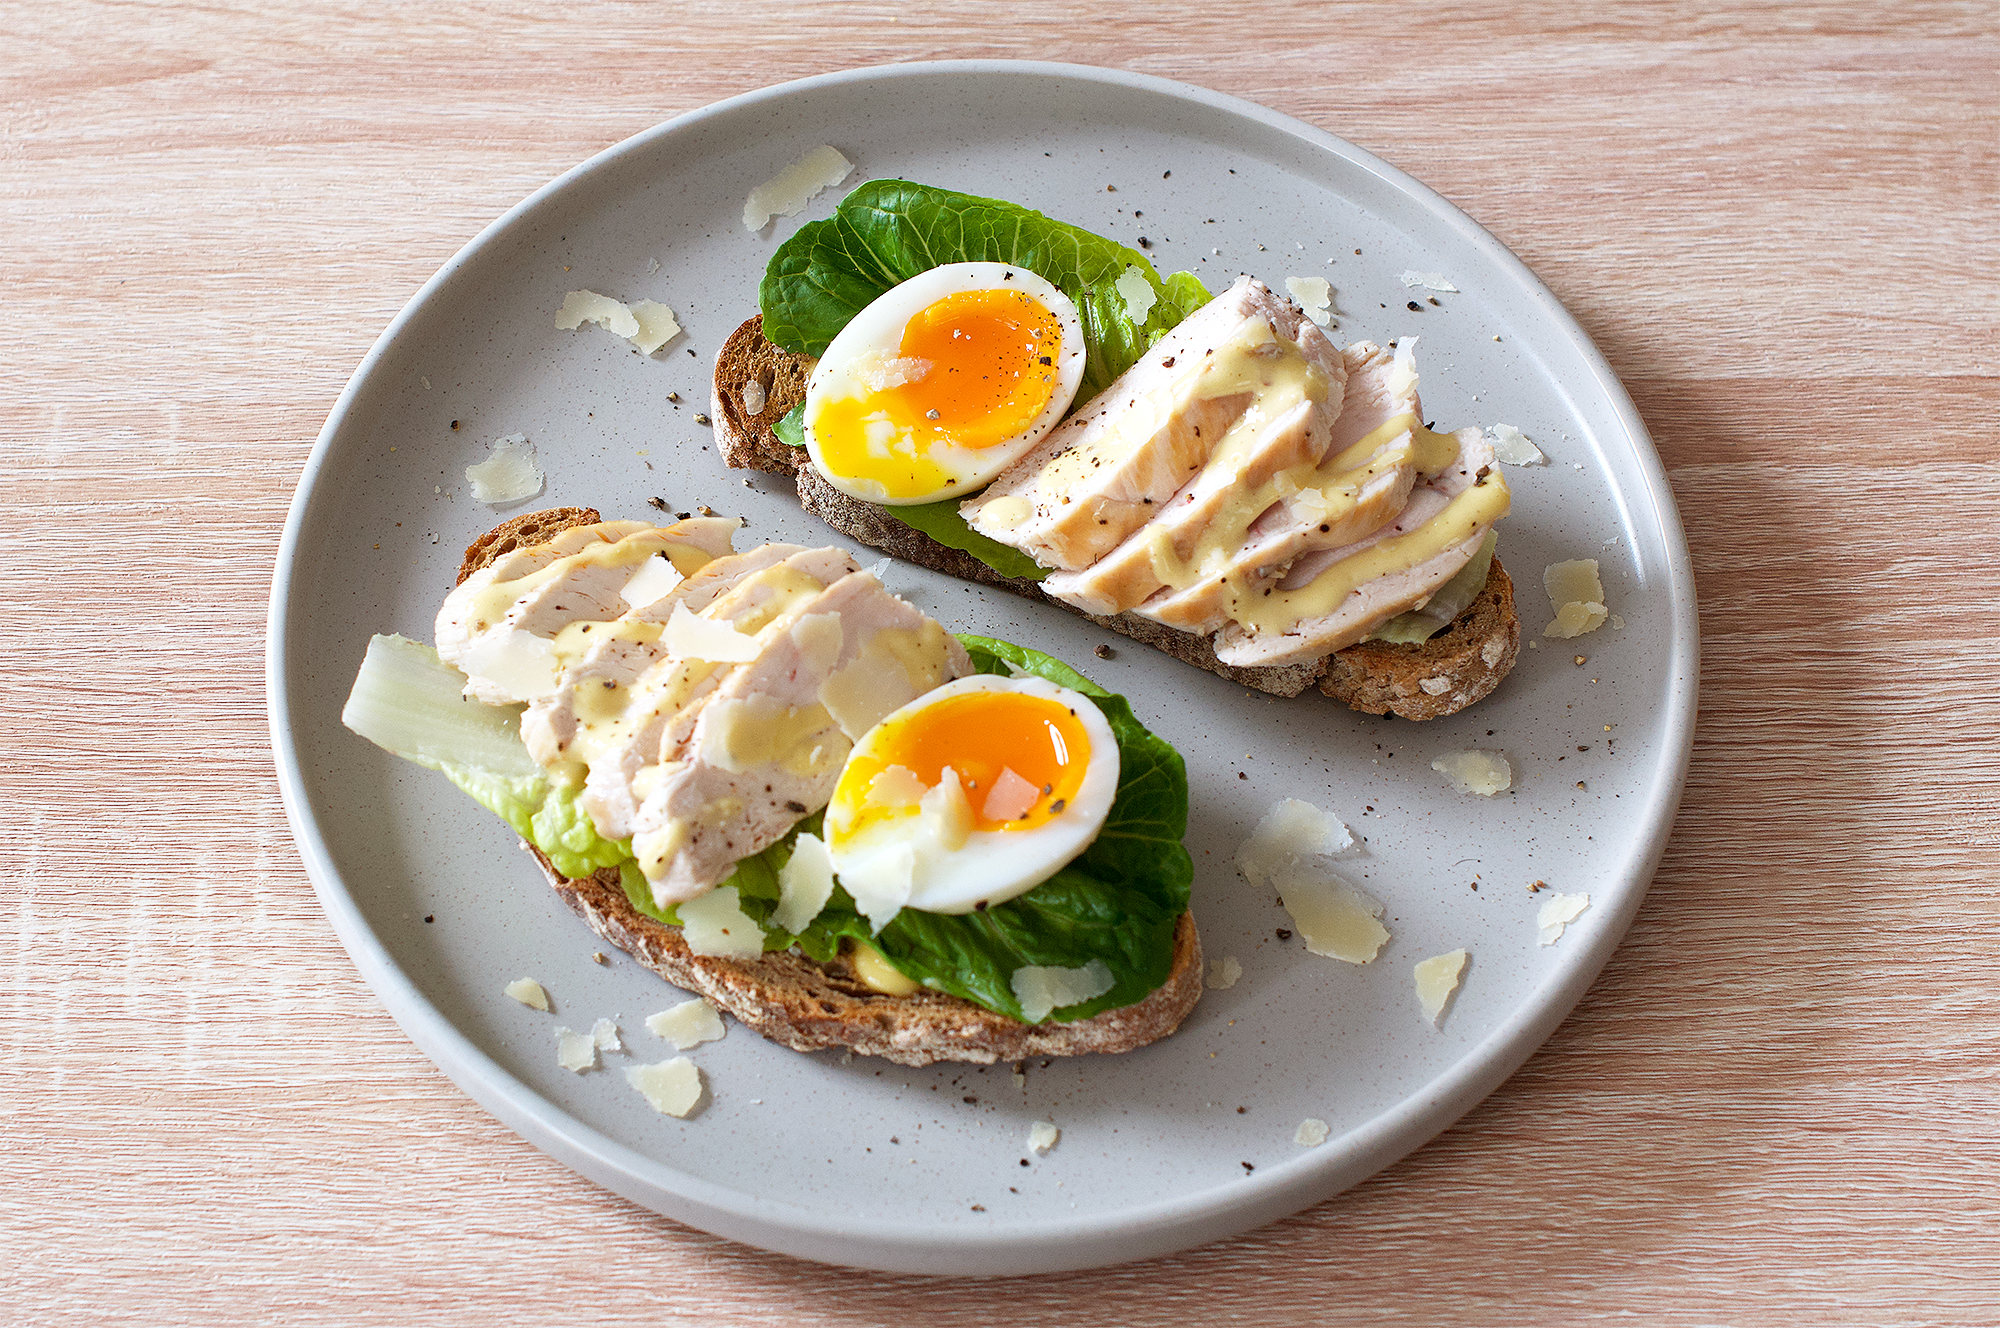 Chicken Caesar salad and dressing with egg on toast recipe